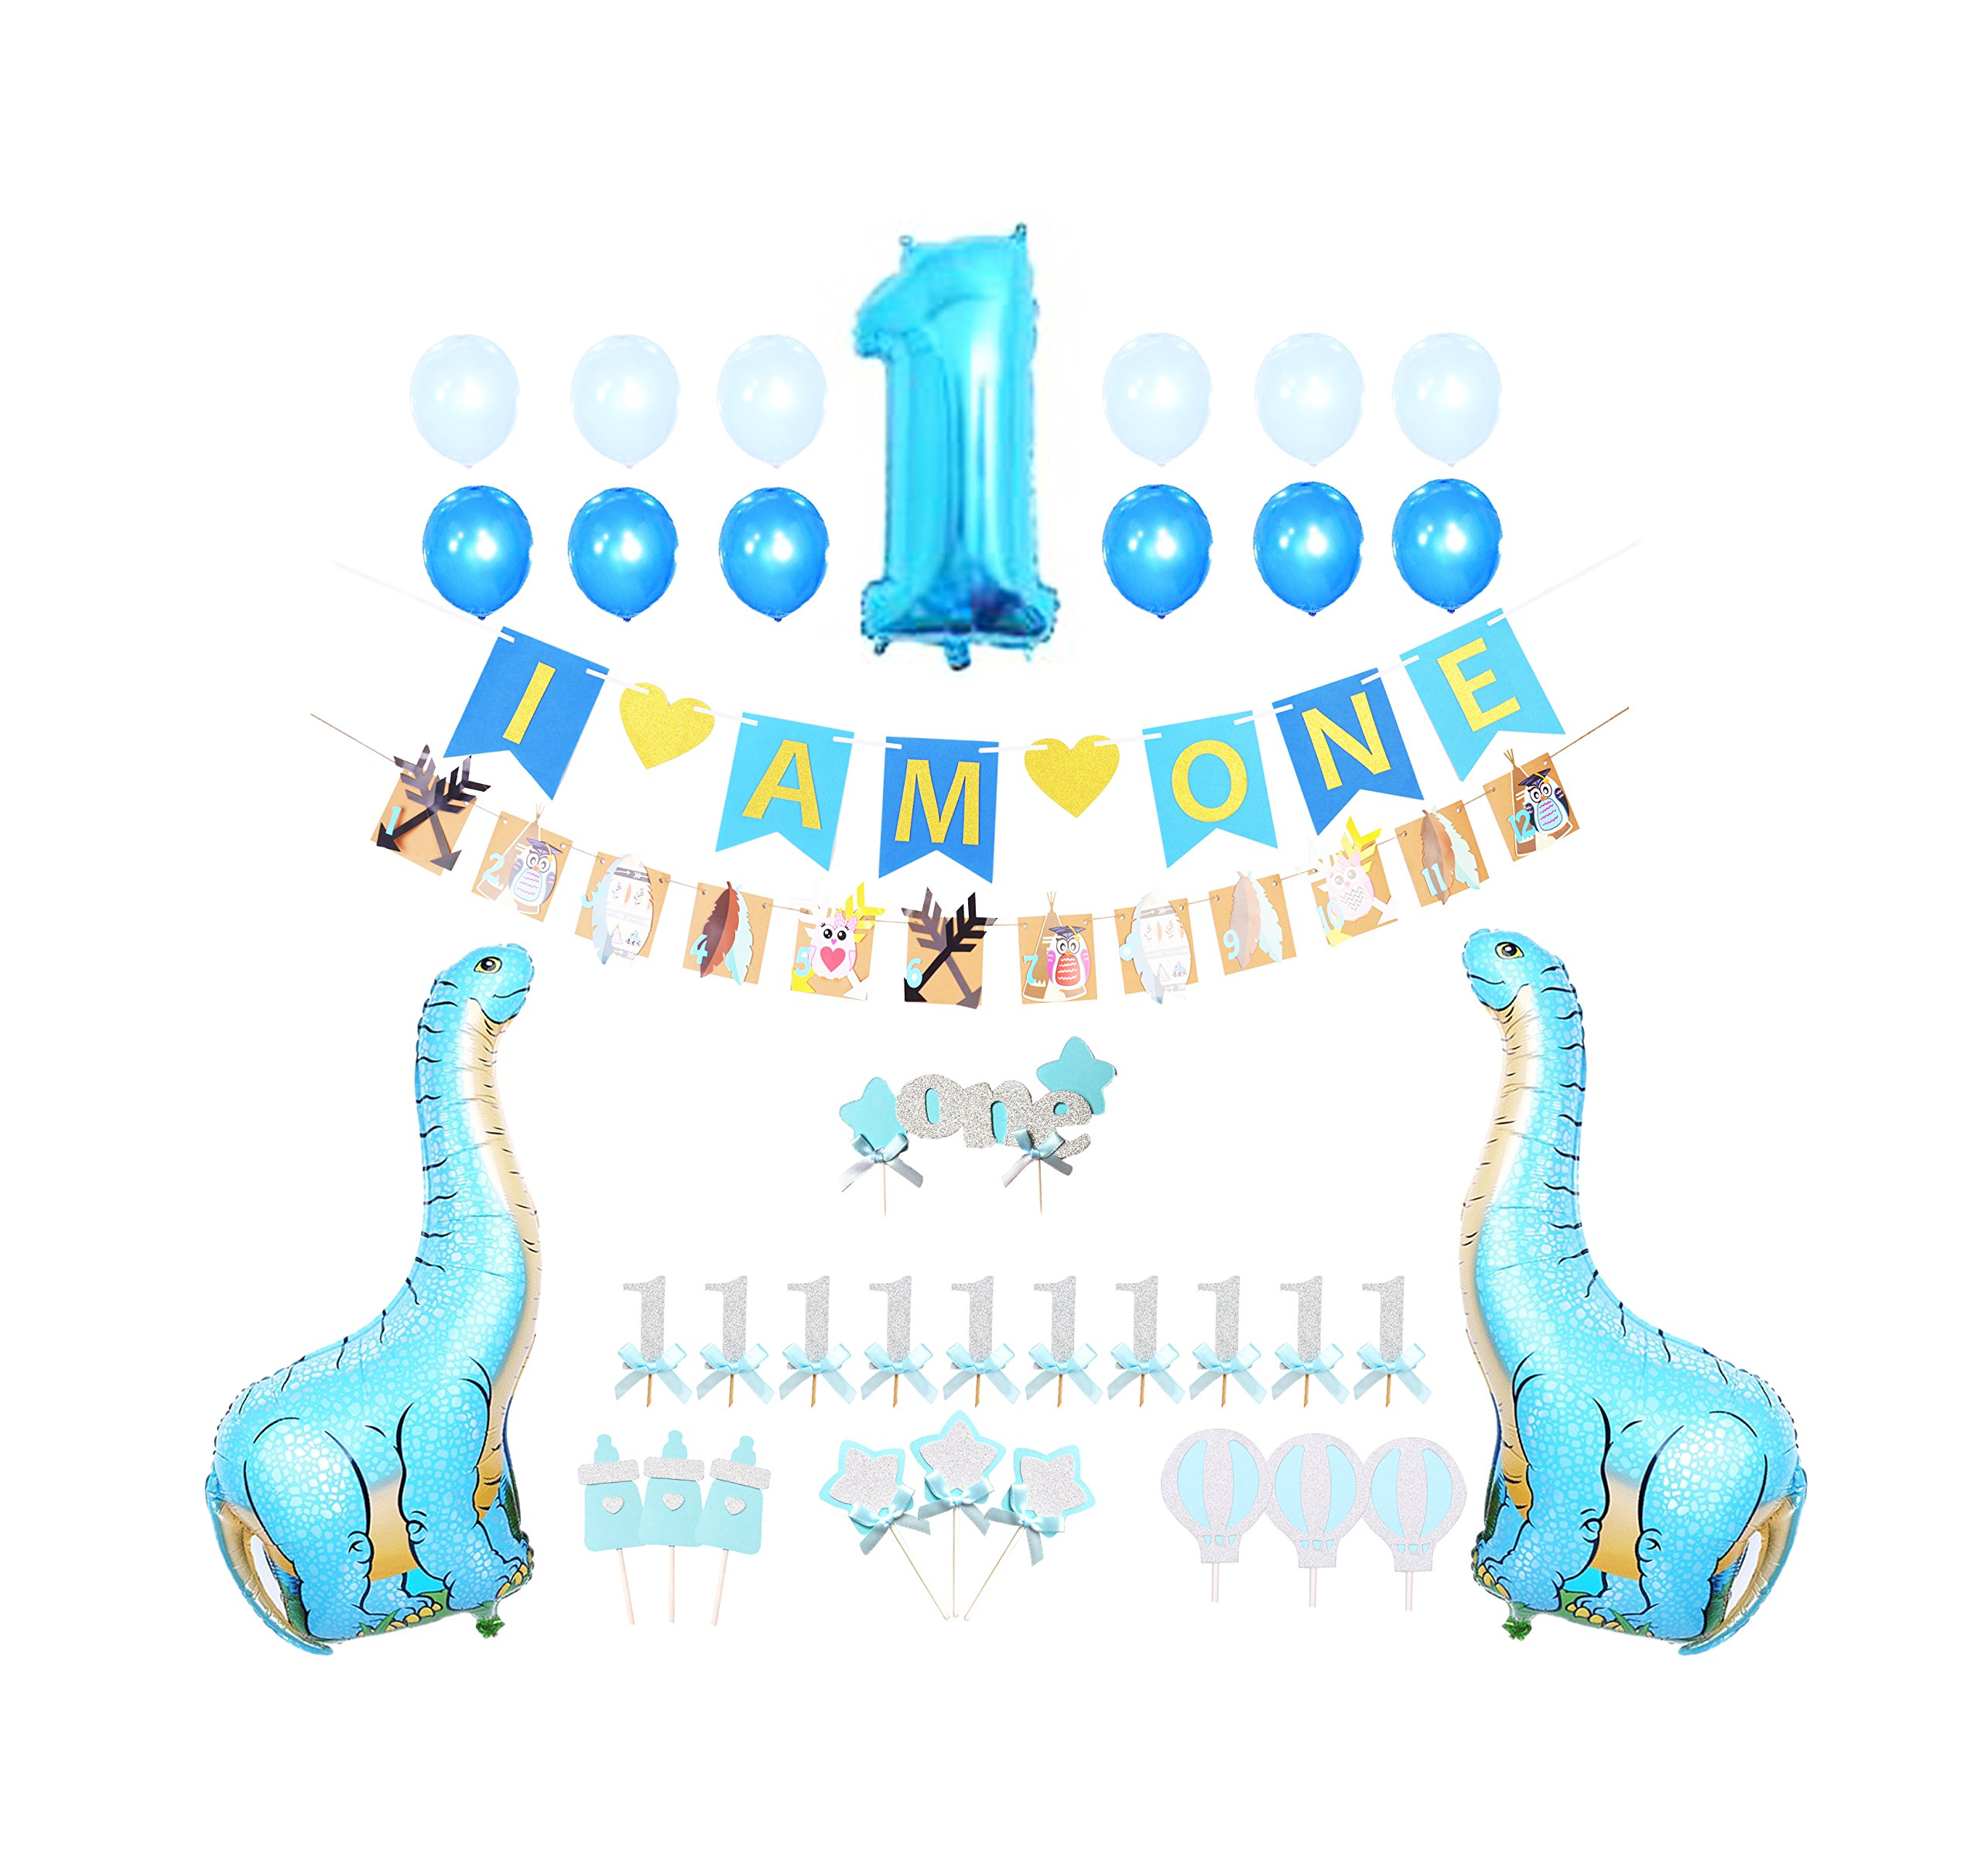 FIRST BIRTHDAY DECORATION SET FOR BOY- 1st Baby Boy Birthday Party, I AM ONE banner,Photo Booth, Dinosaur Mylar Foil Balloons,Cake Topper,Cupcake Topper,Milk Bottle,Star Topper,Hot Balloon Topper